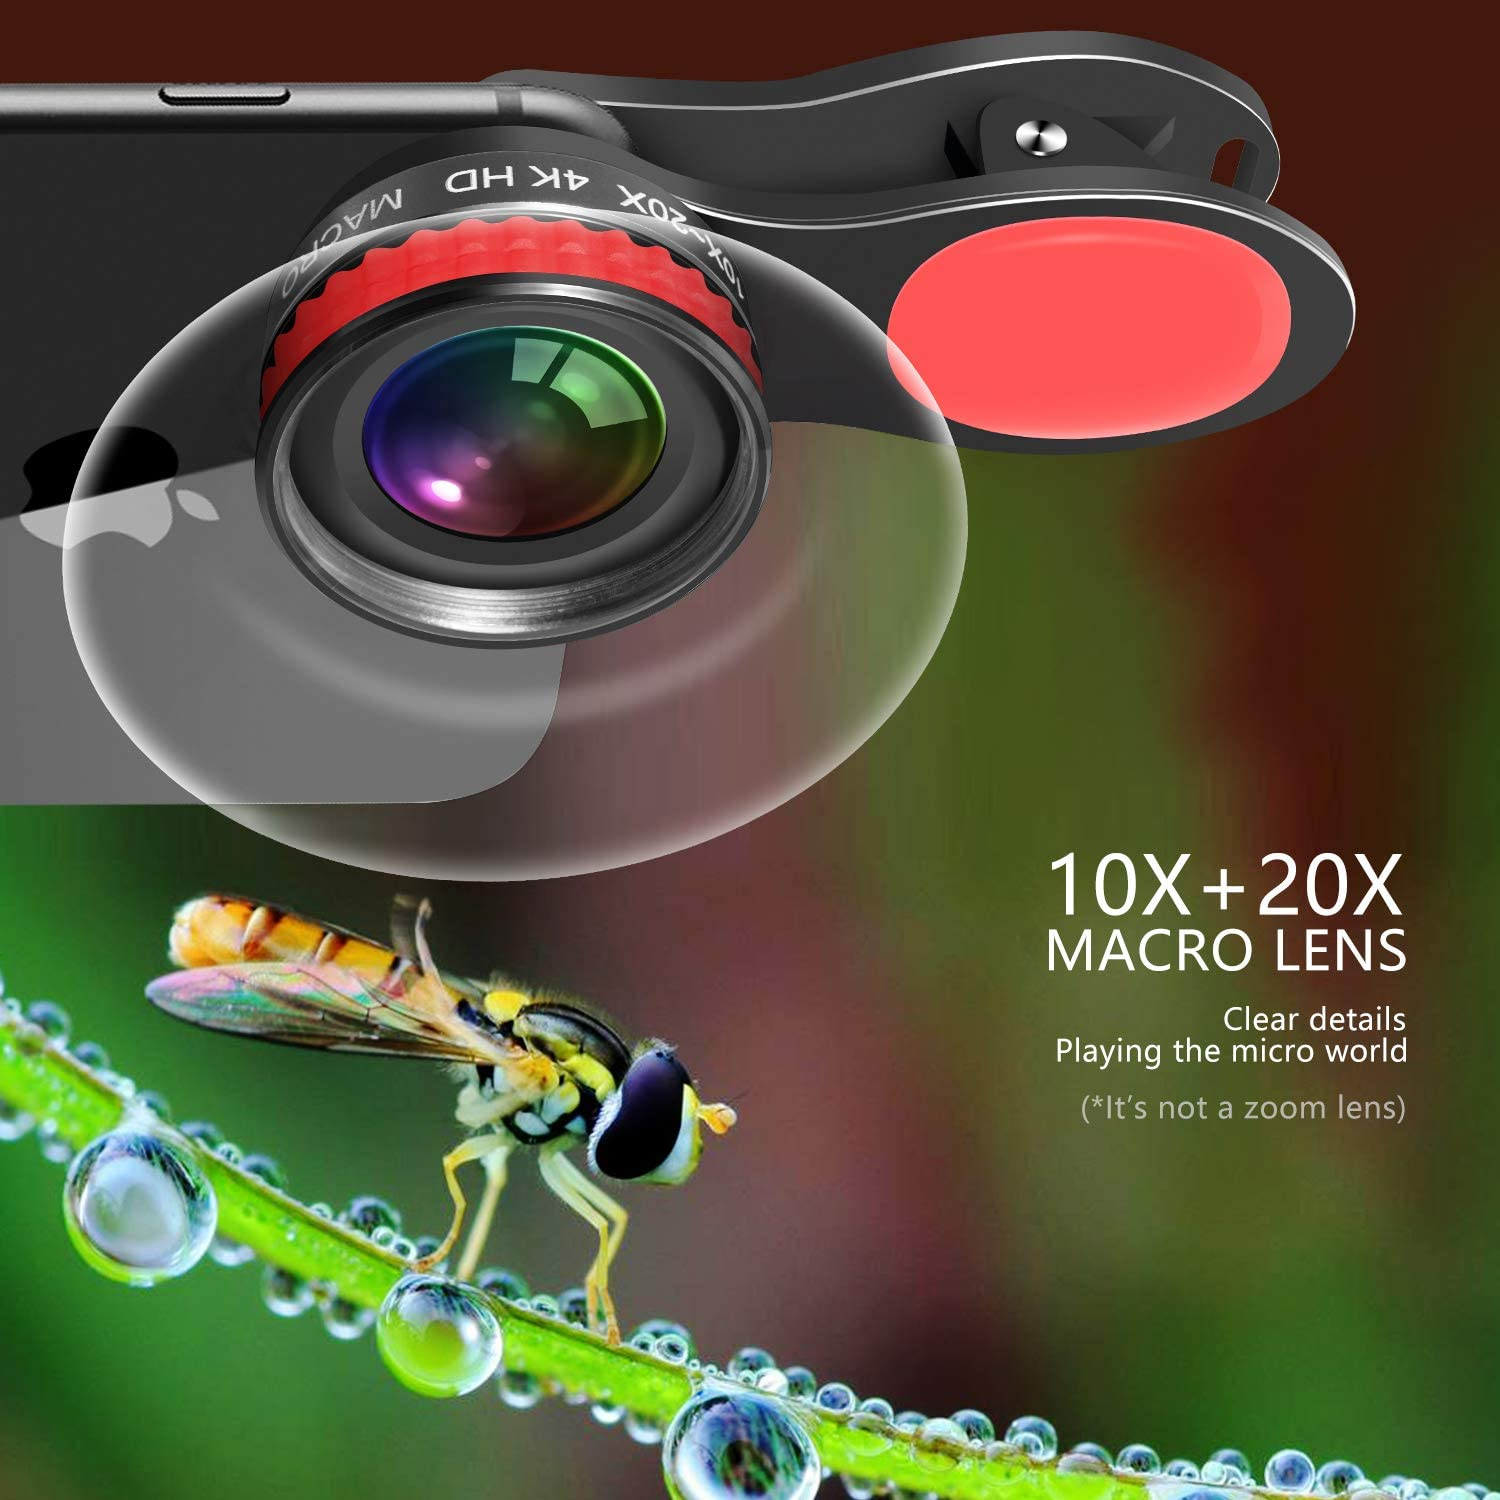 HD Smartphone Lens for iPhone Cell Phone Camera Lens 20X /& 10X Super Macro Lens Samsung Android Micro World